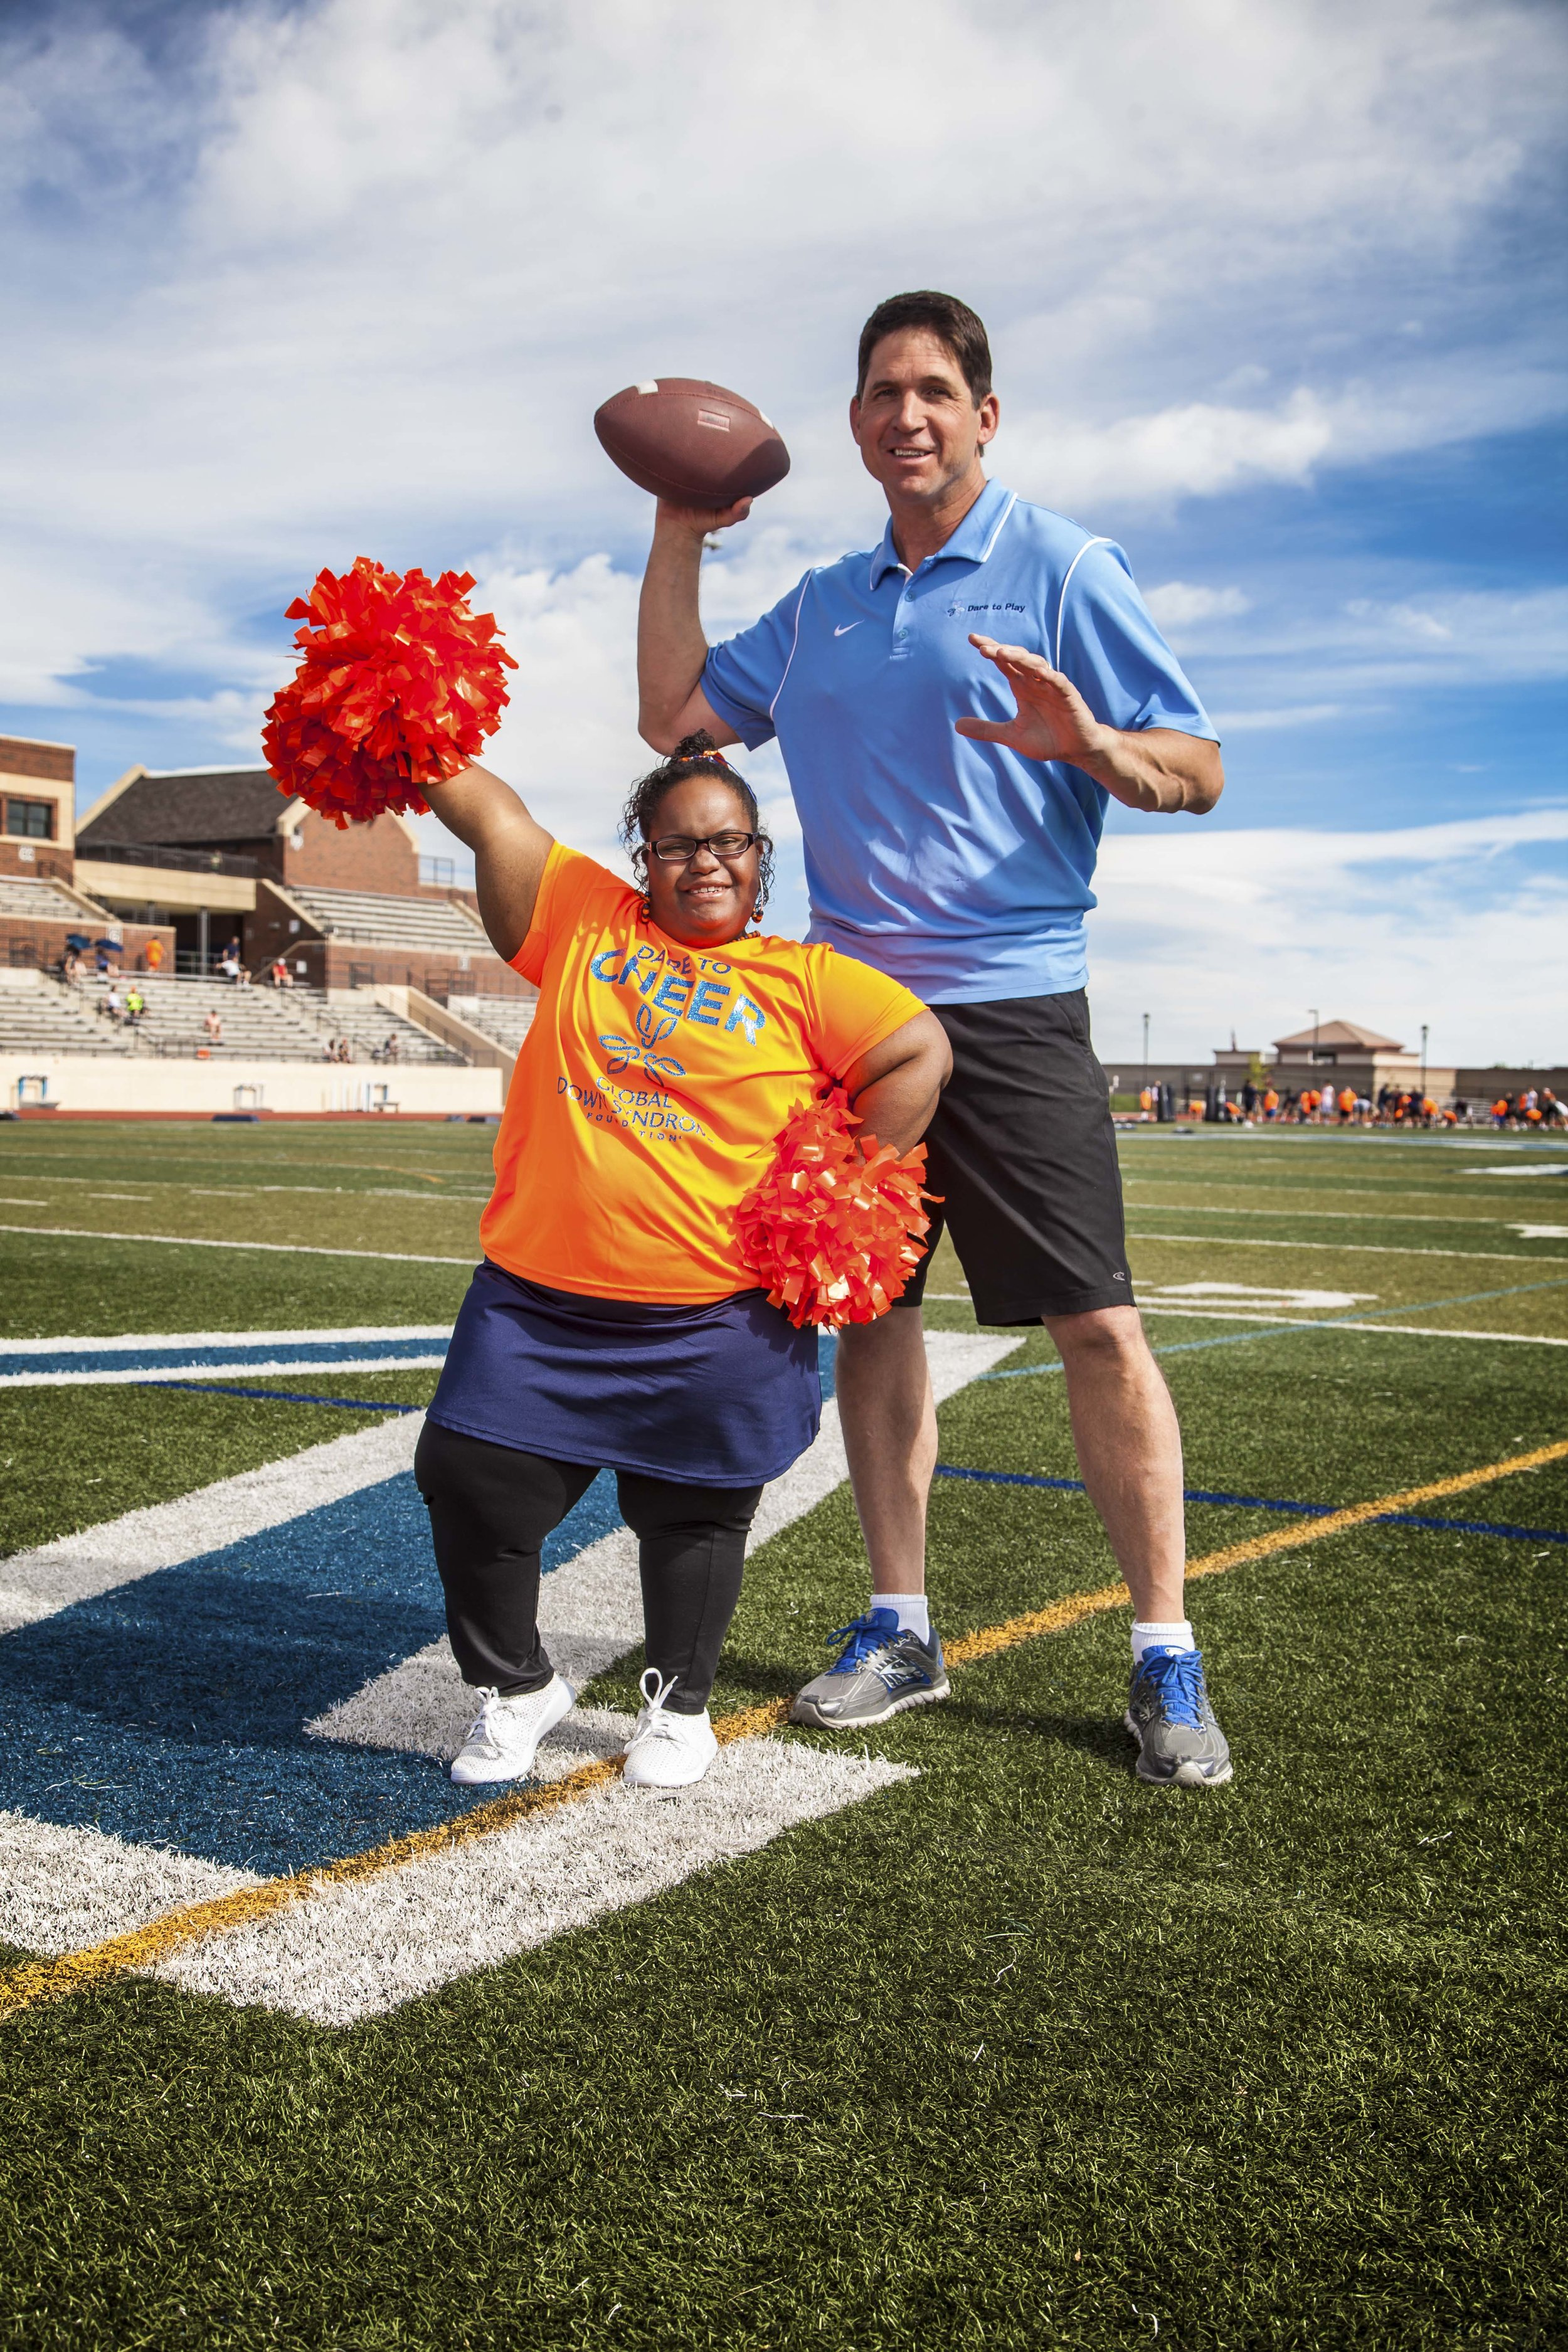 Global Down Syndrome featuring Ed McCaffrey